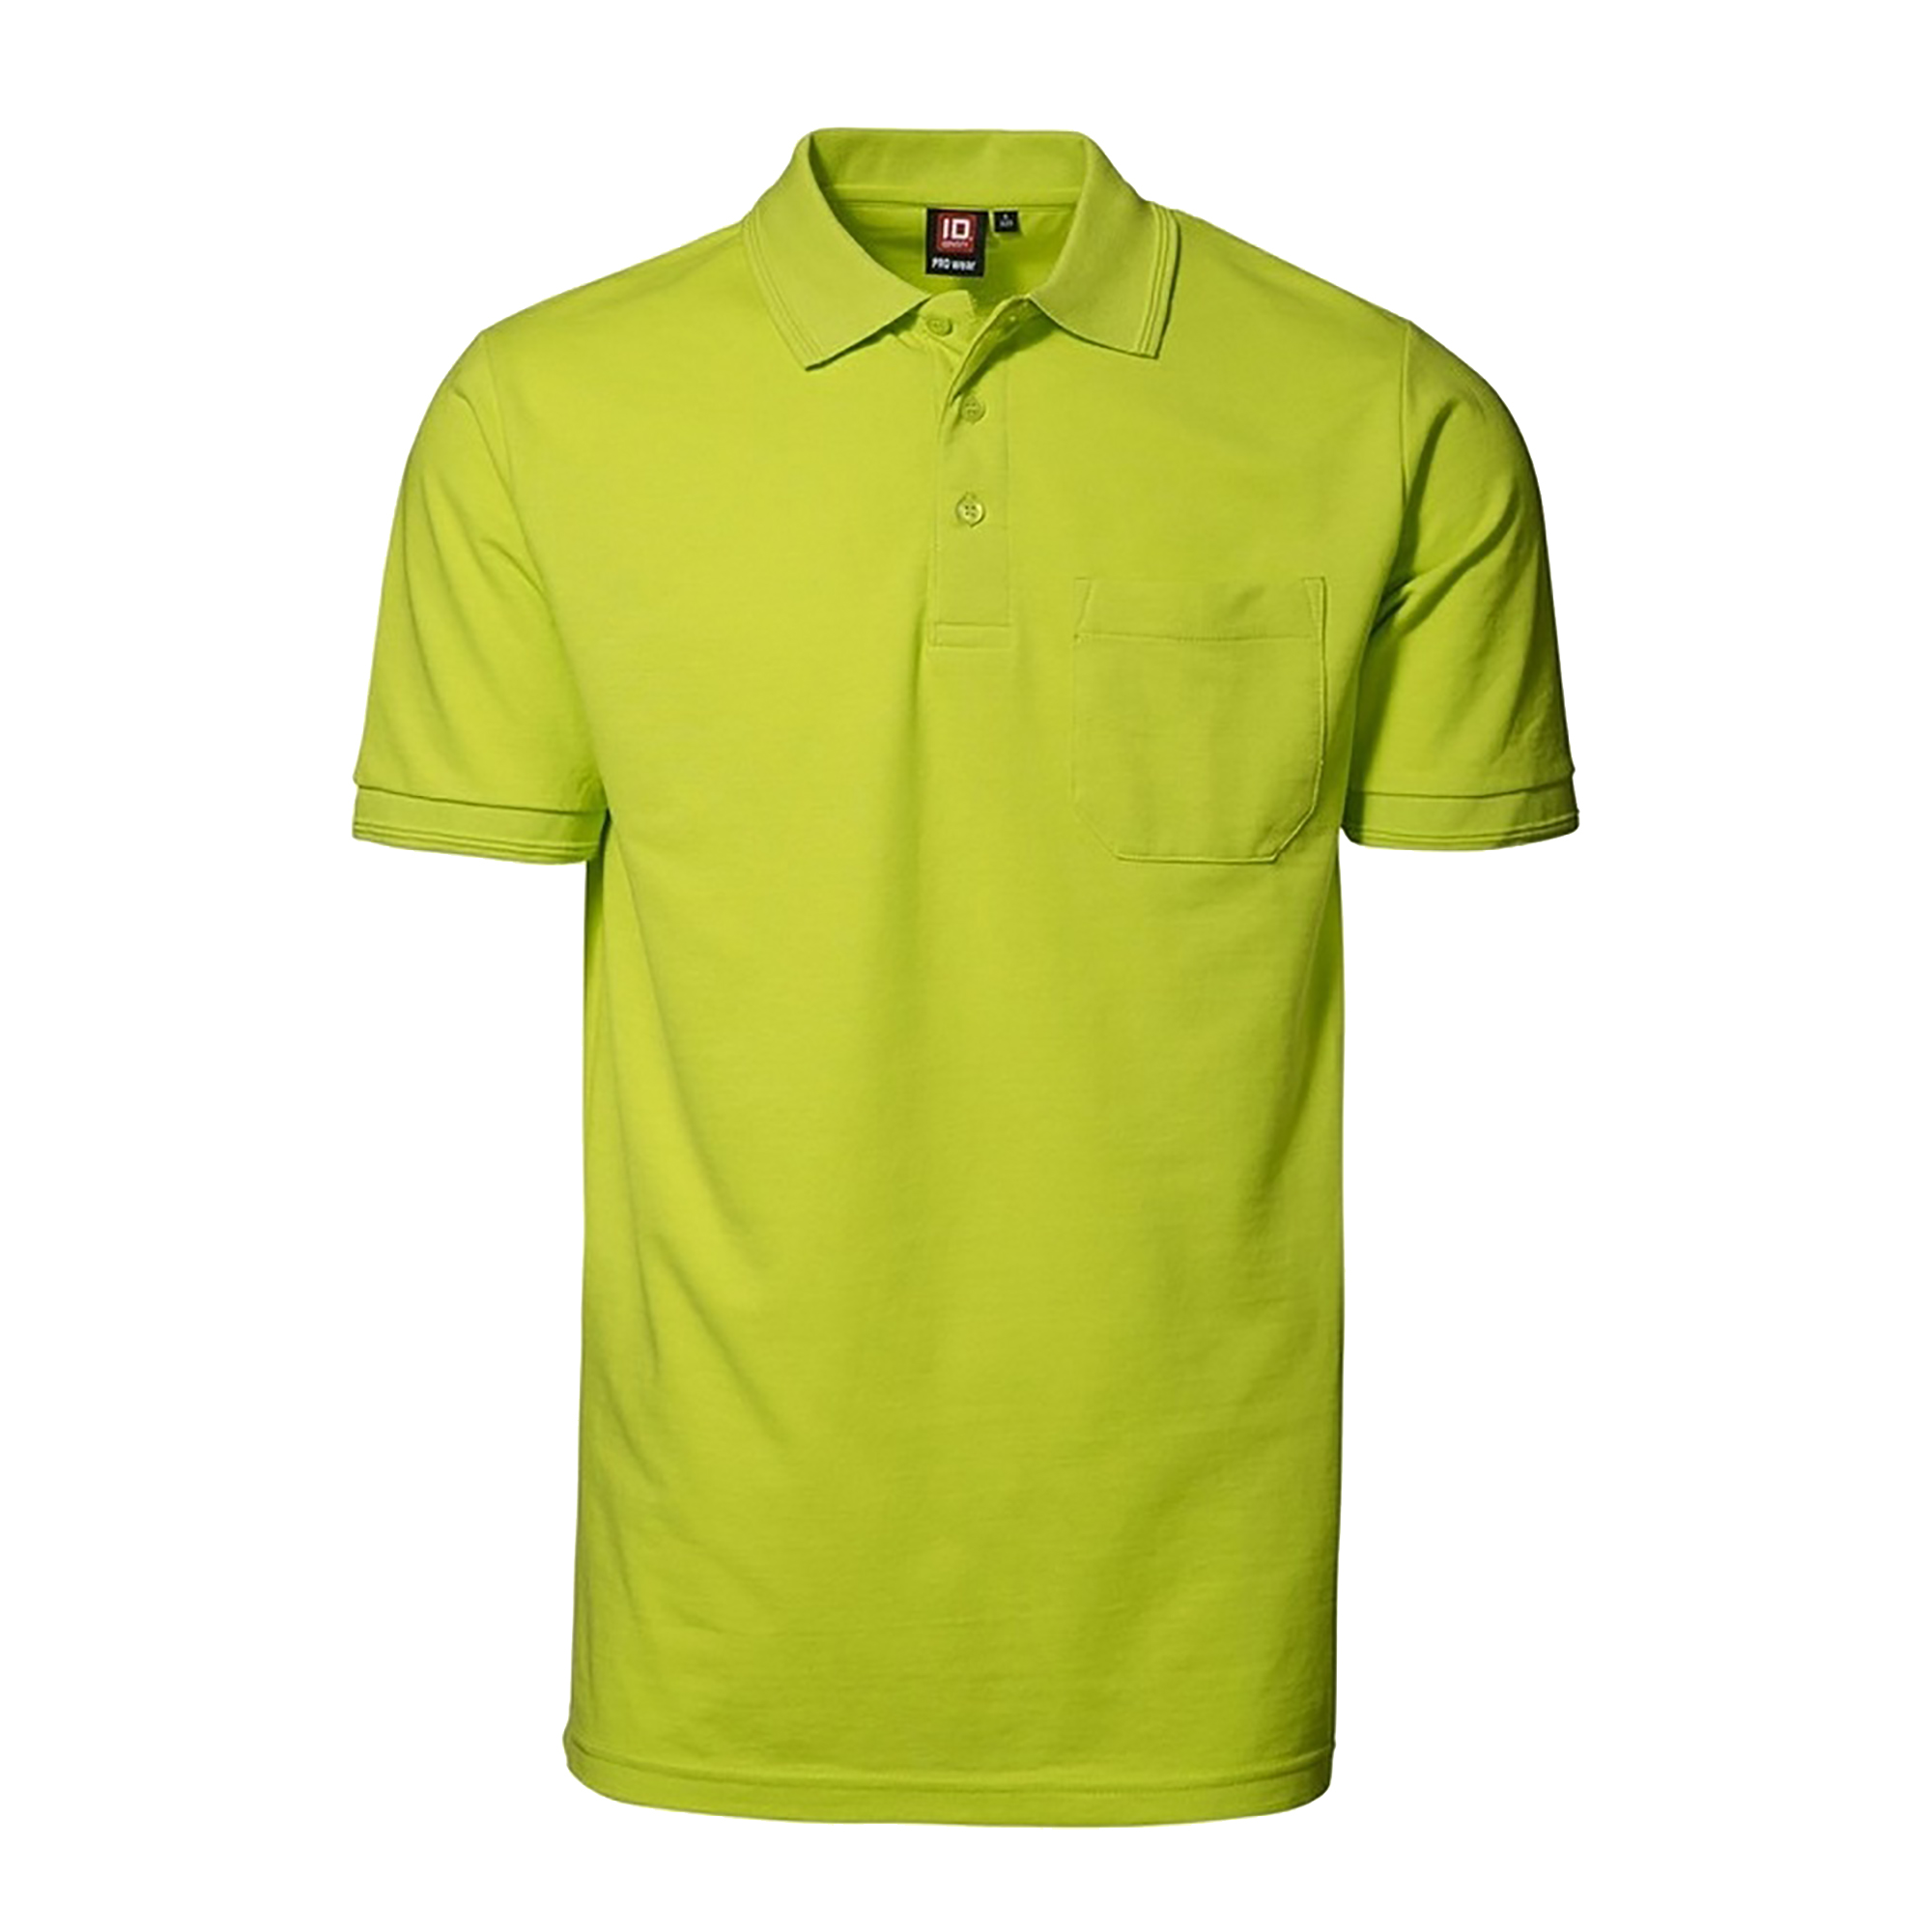 Id mens pro wear short sleeve polo shirt with pocket ebay for Mens polo shirts online